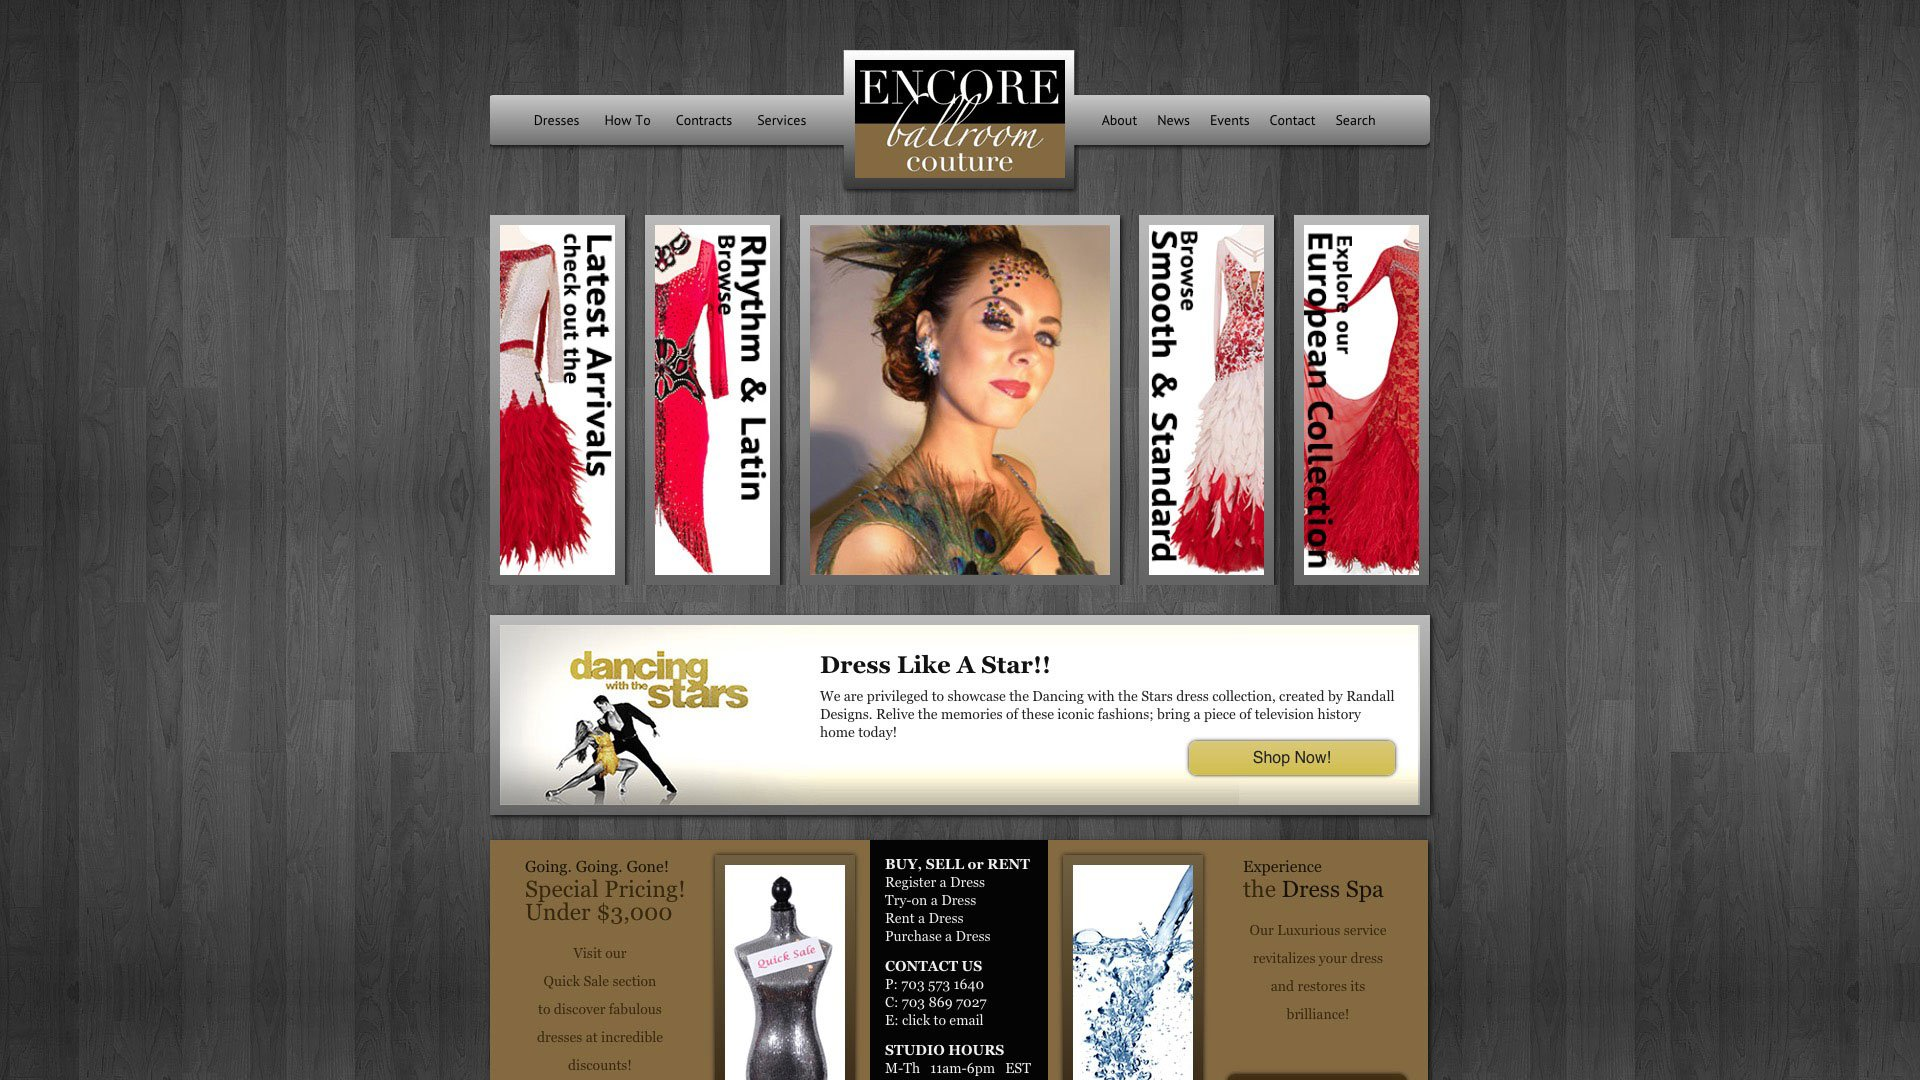 The Main Page Of Encore Ballroom Couture